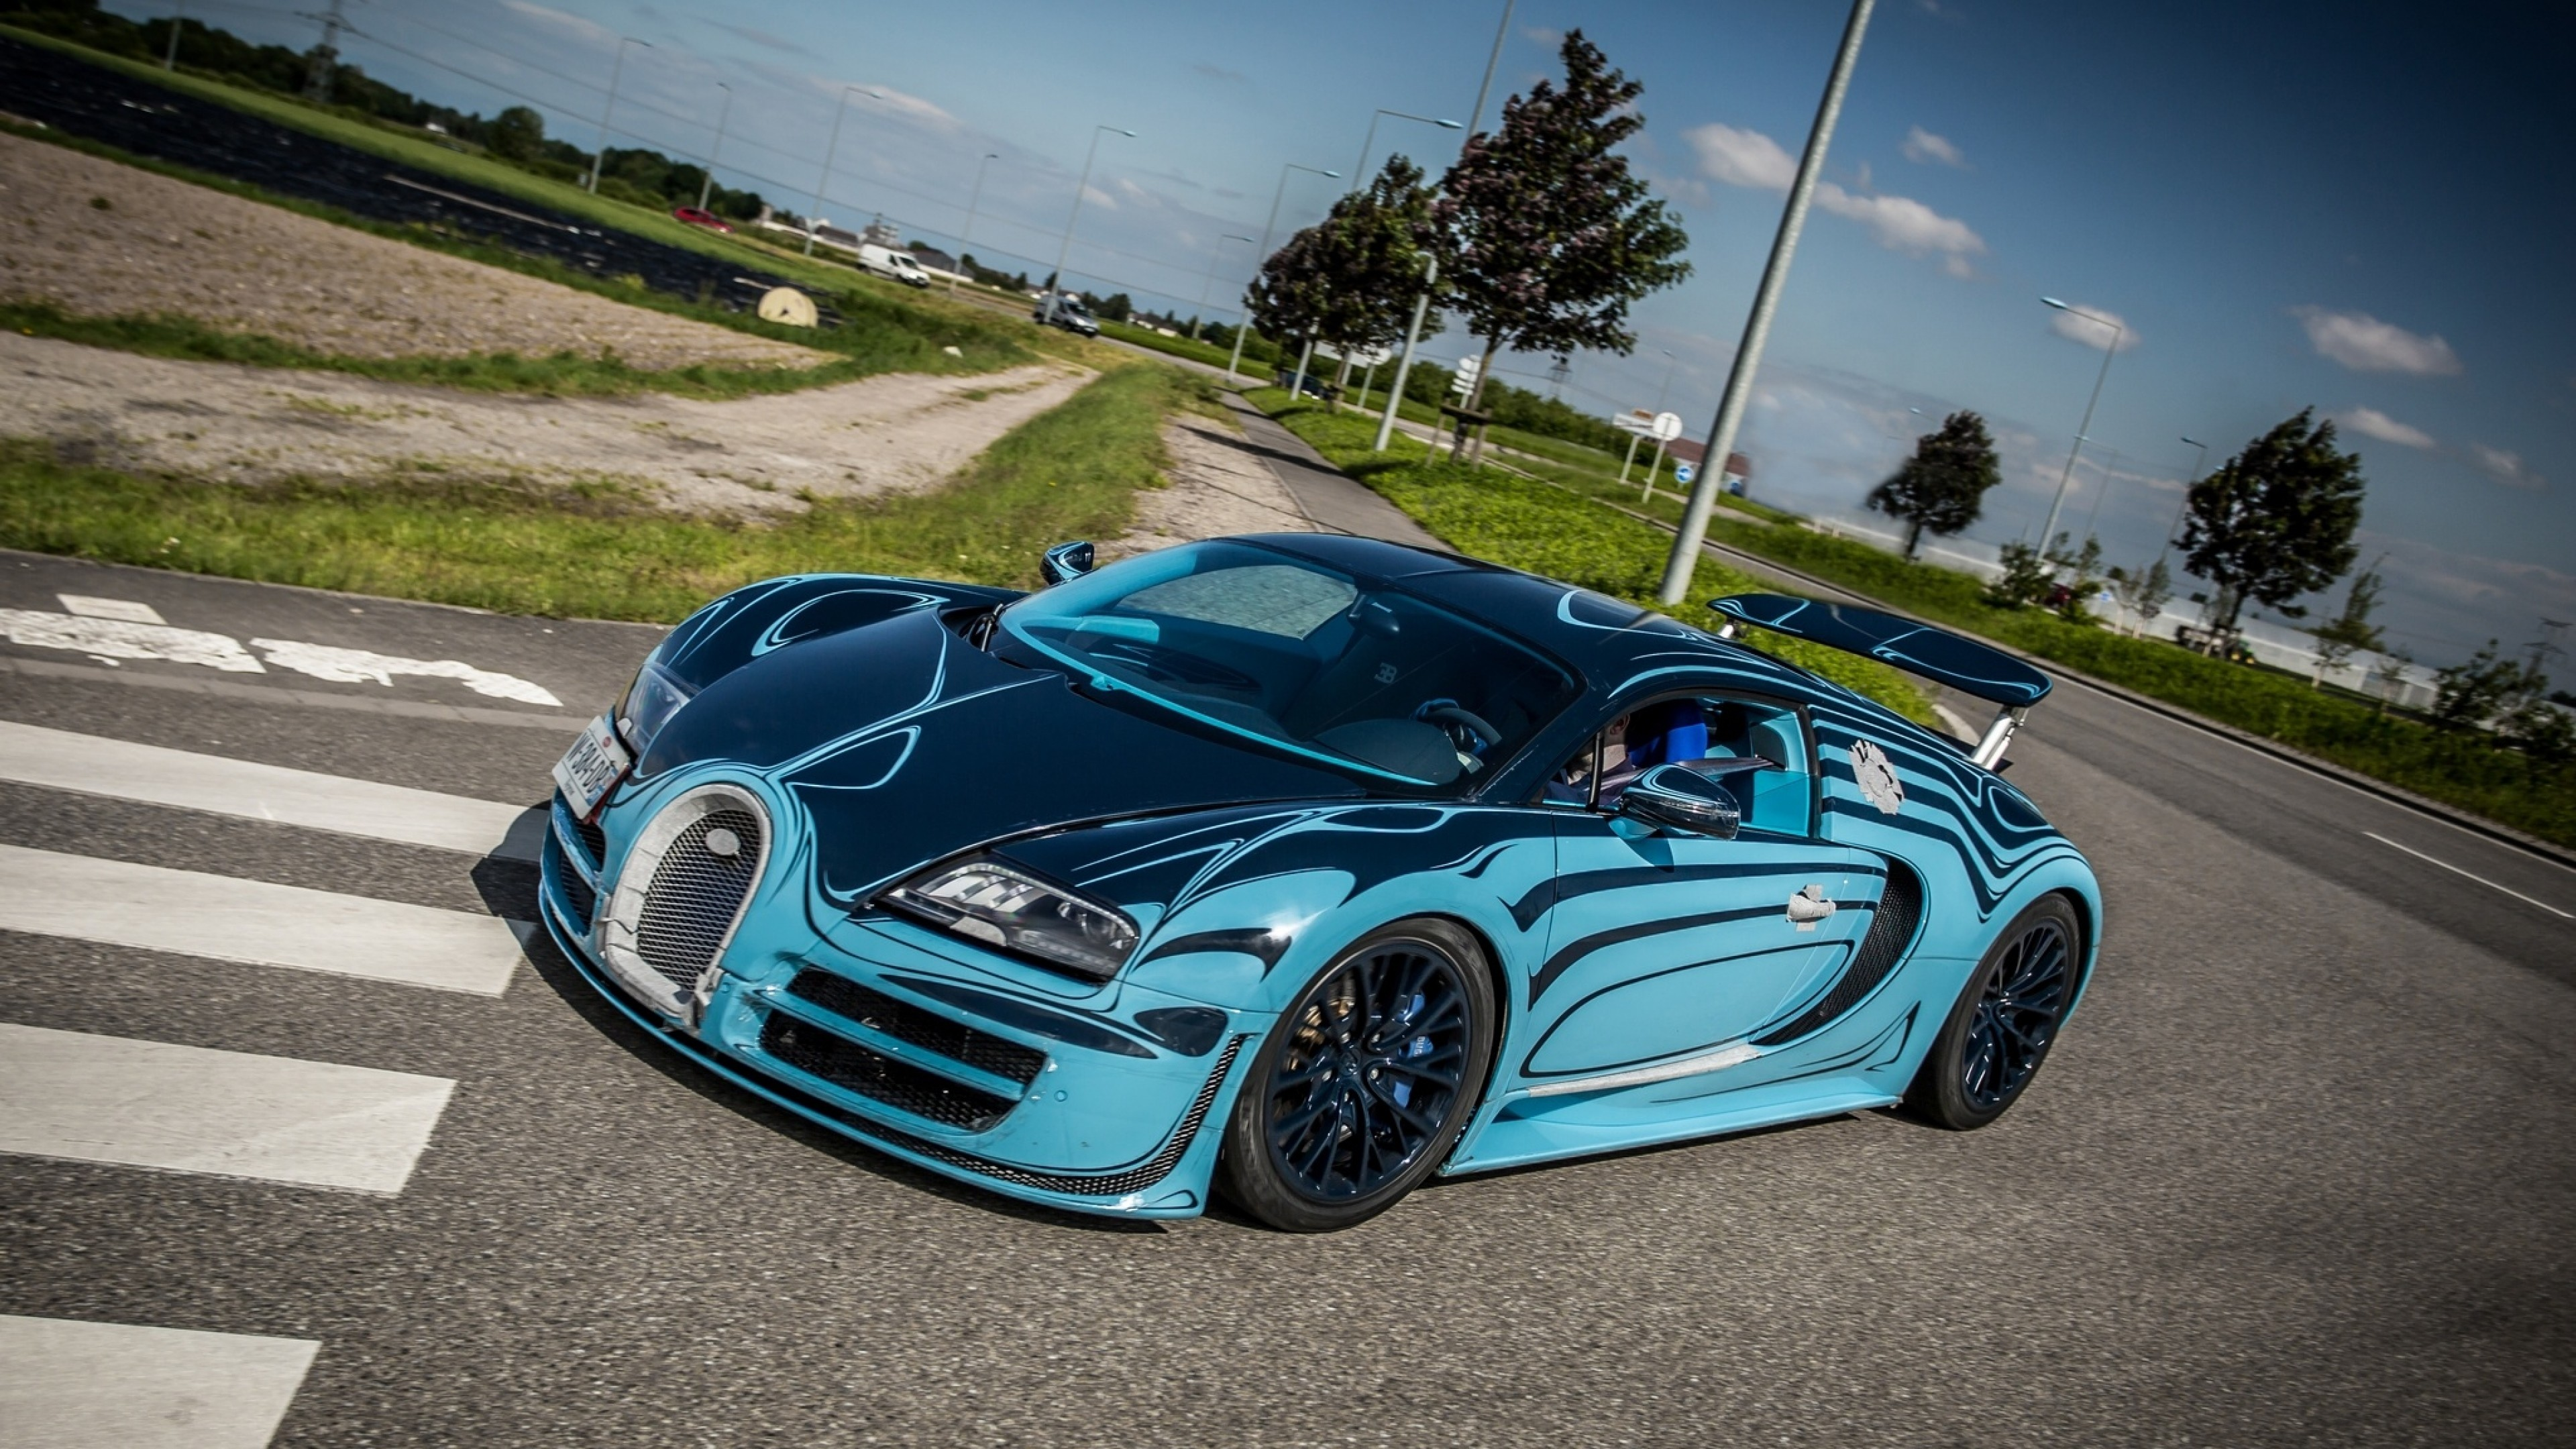 Blue Bugatti Veyron Super Sport Wallpaper: Bugatti Chiron Wallpapers (74+ Images